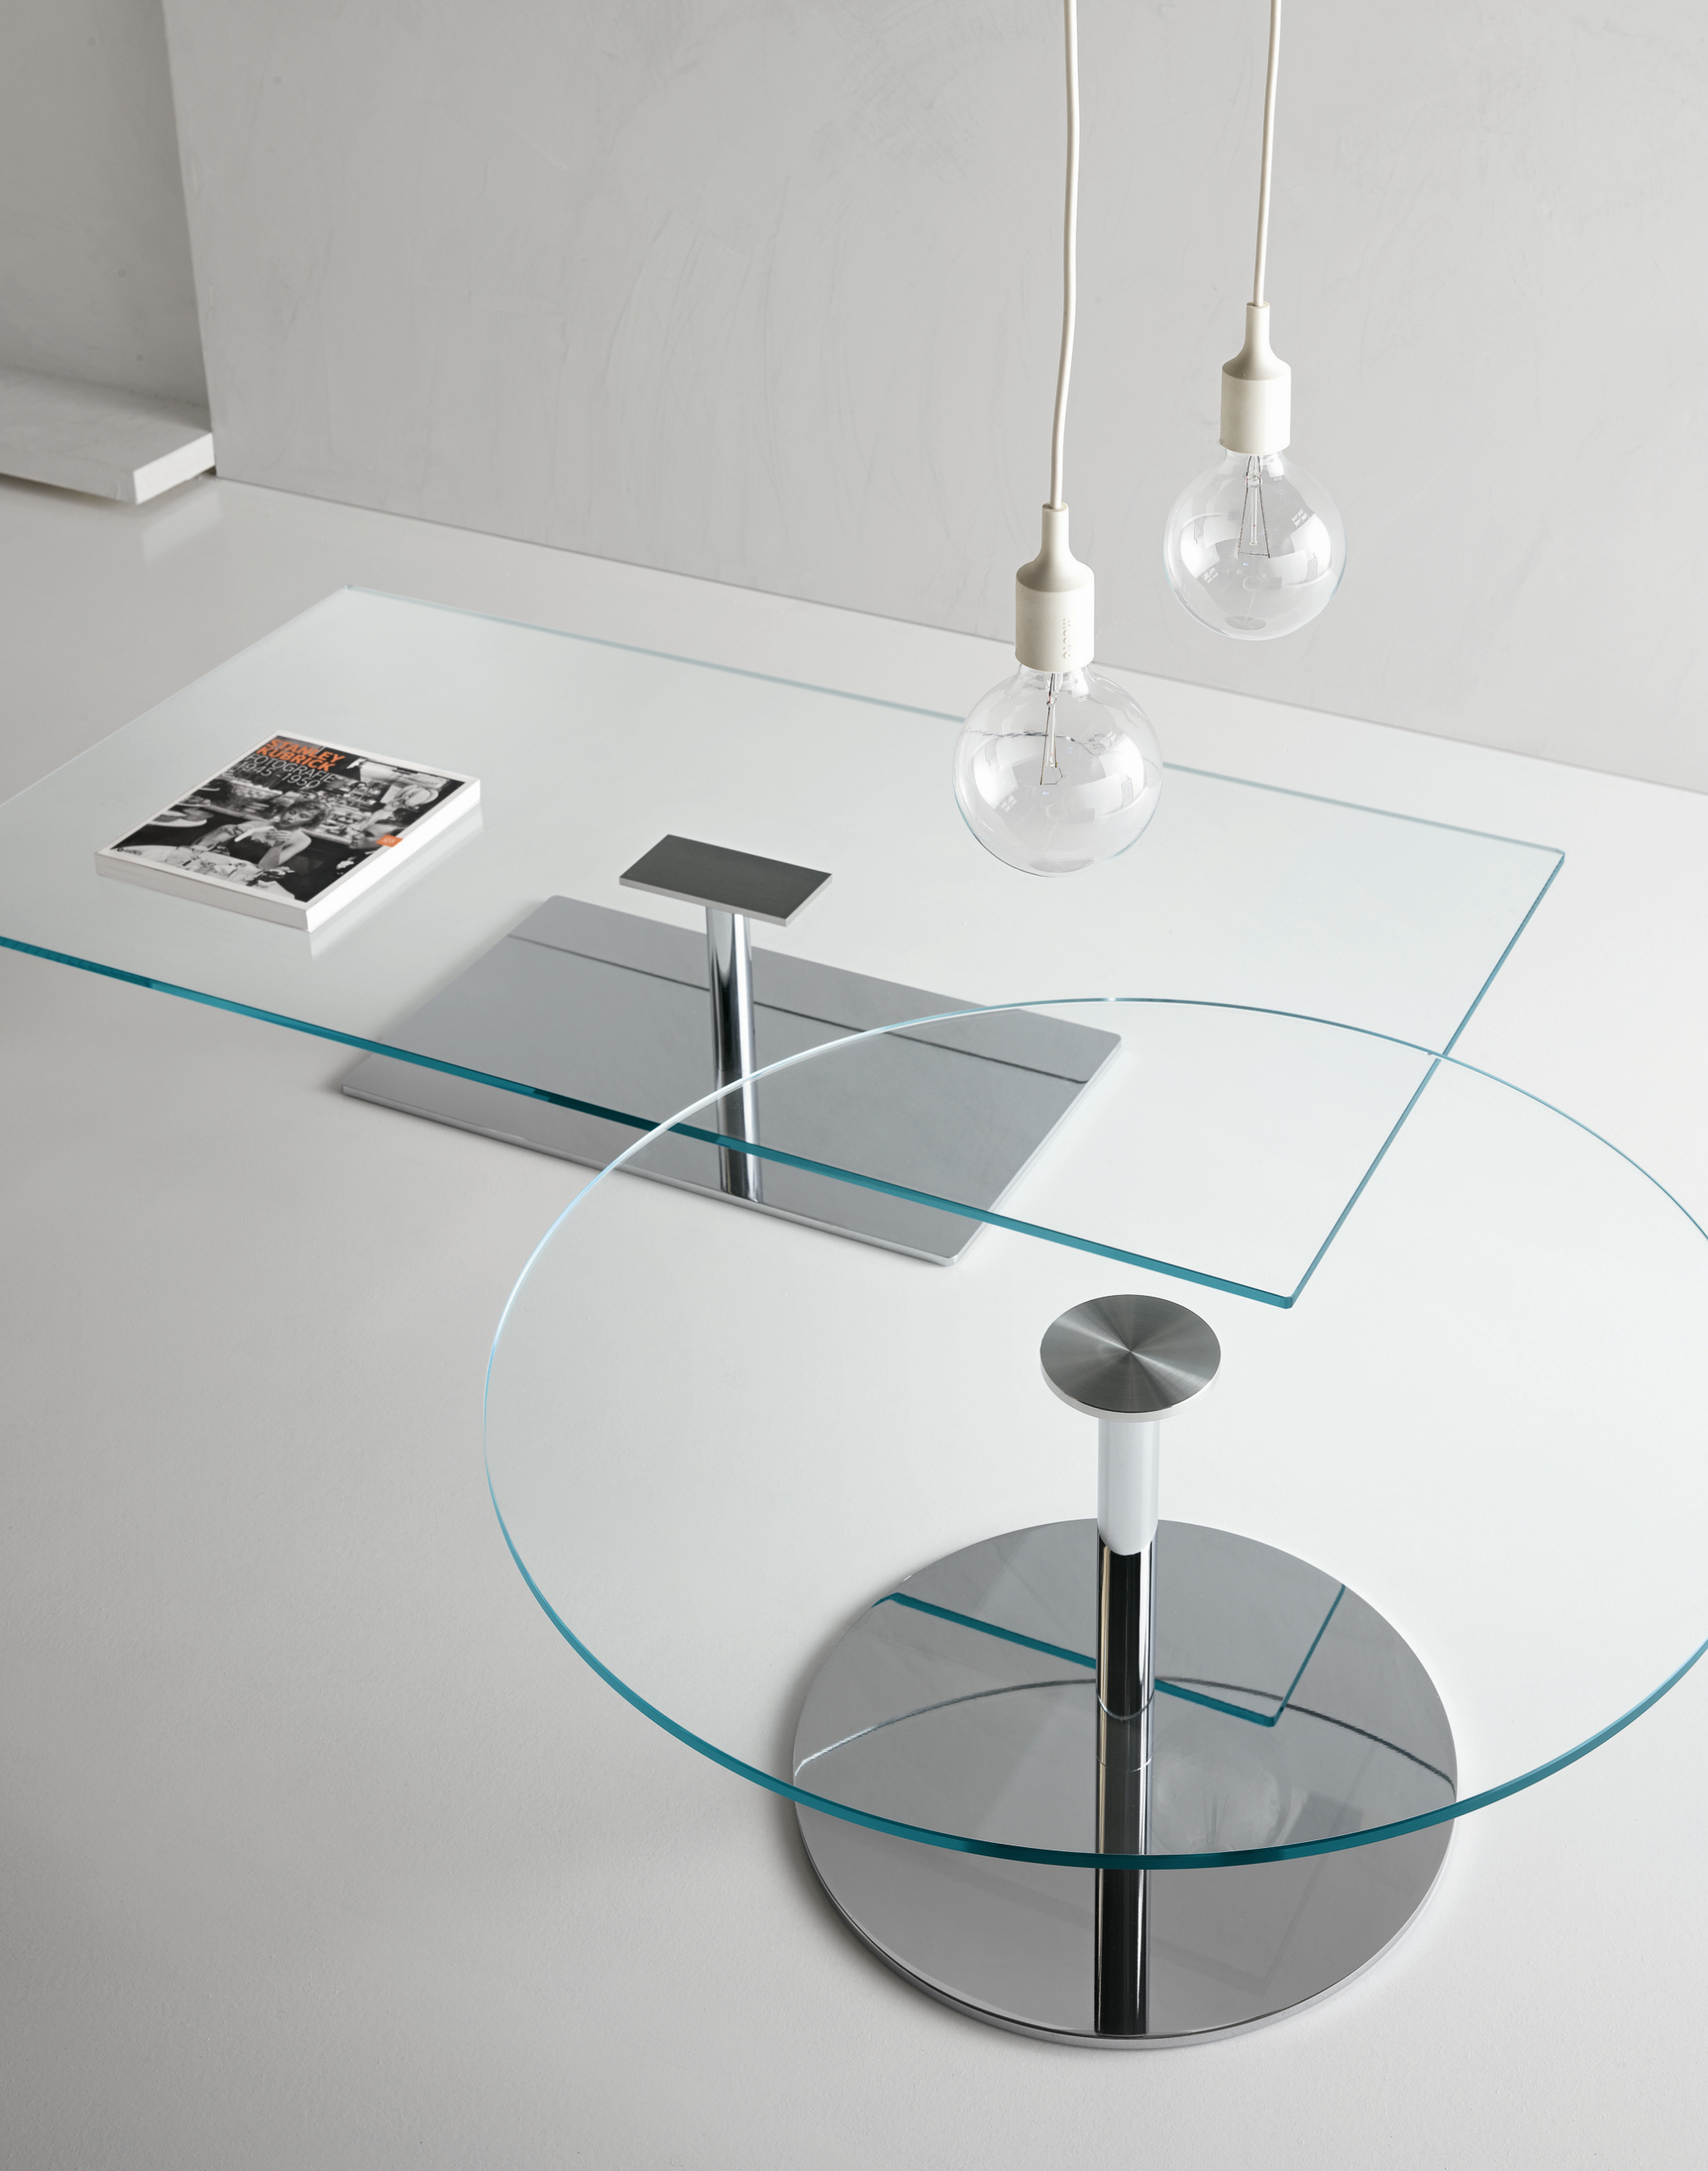 Farniente alto table ronde by t d tonelli design design giovanni tommaso garattoni Table en verre design